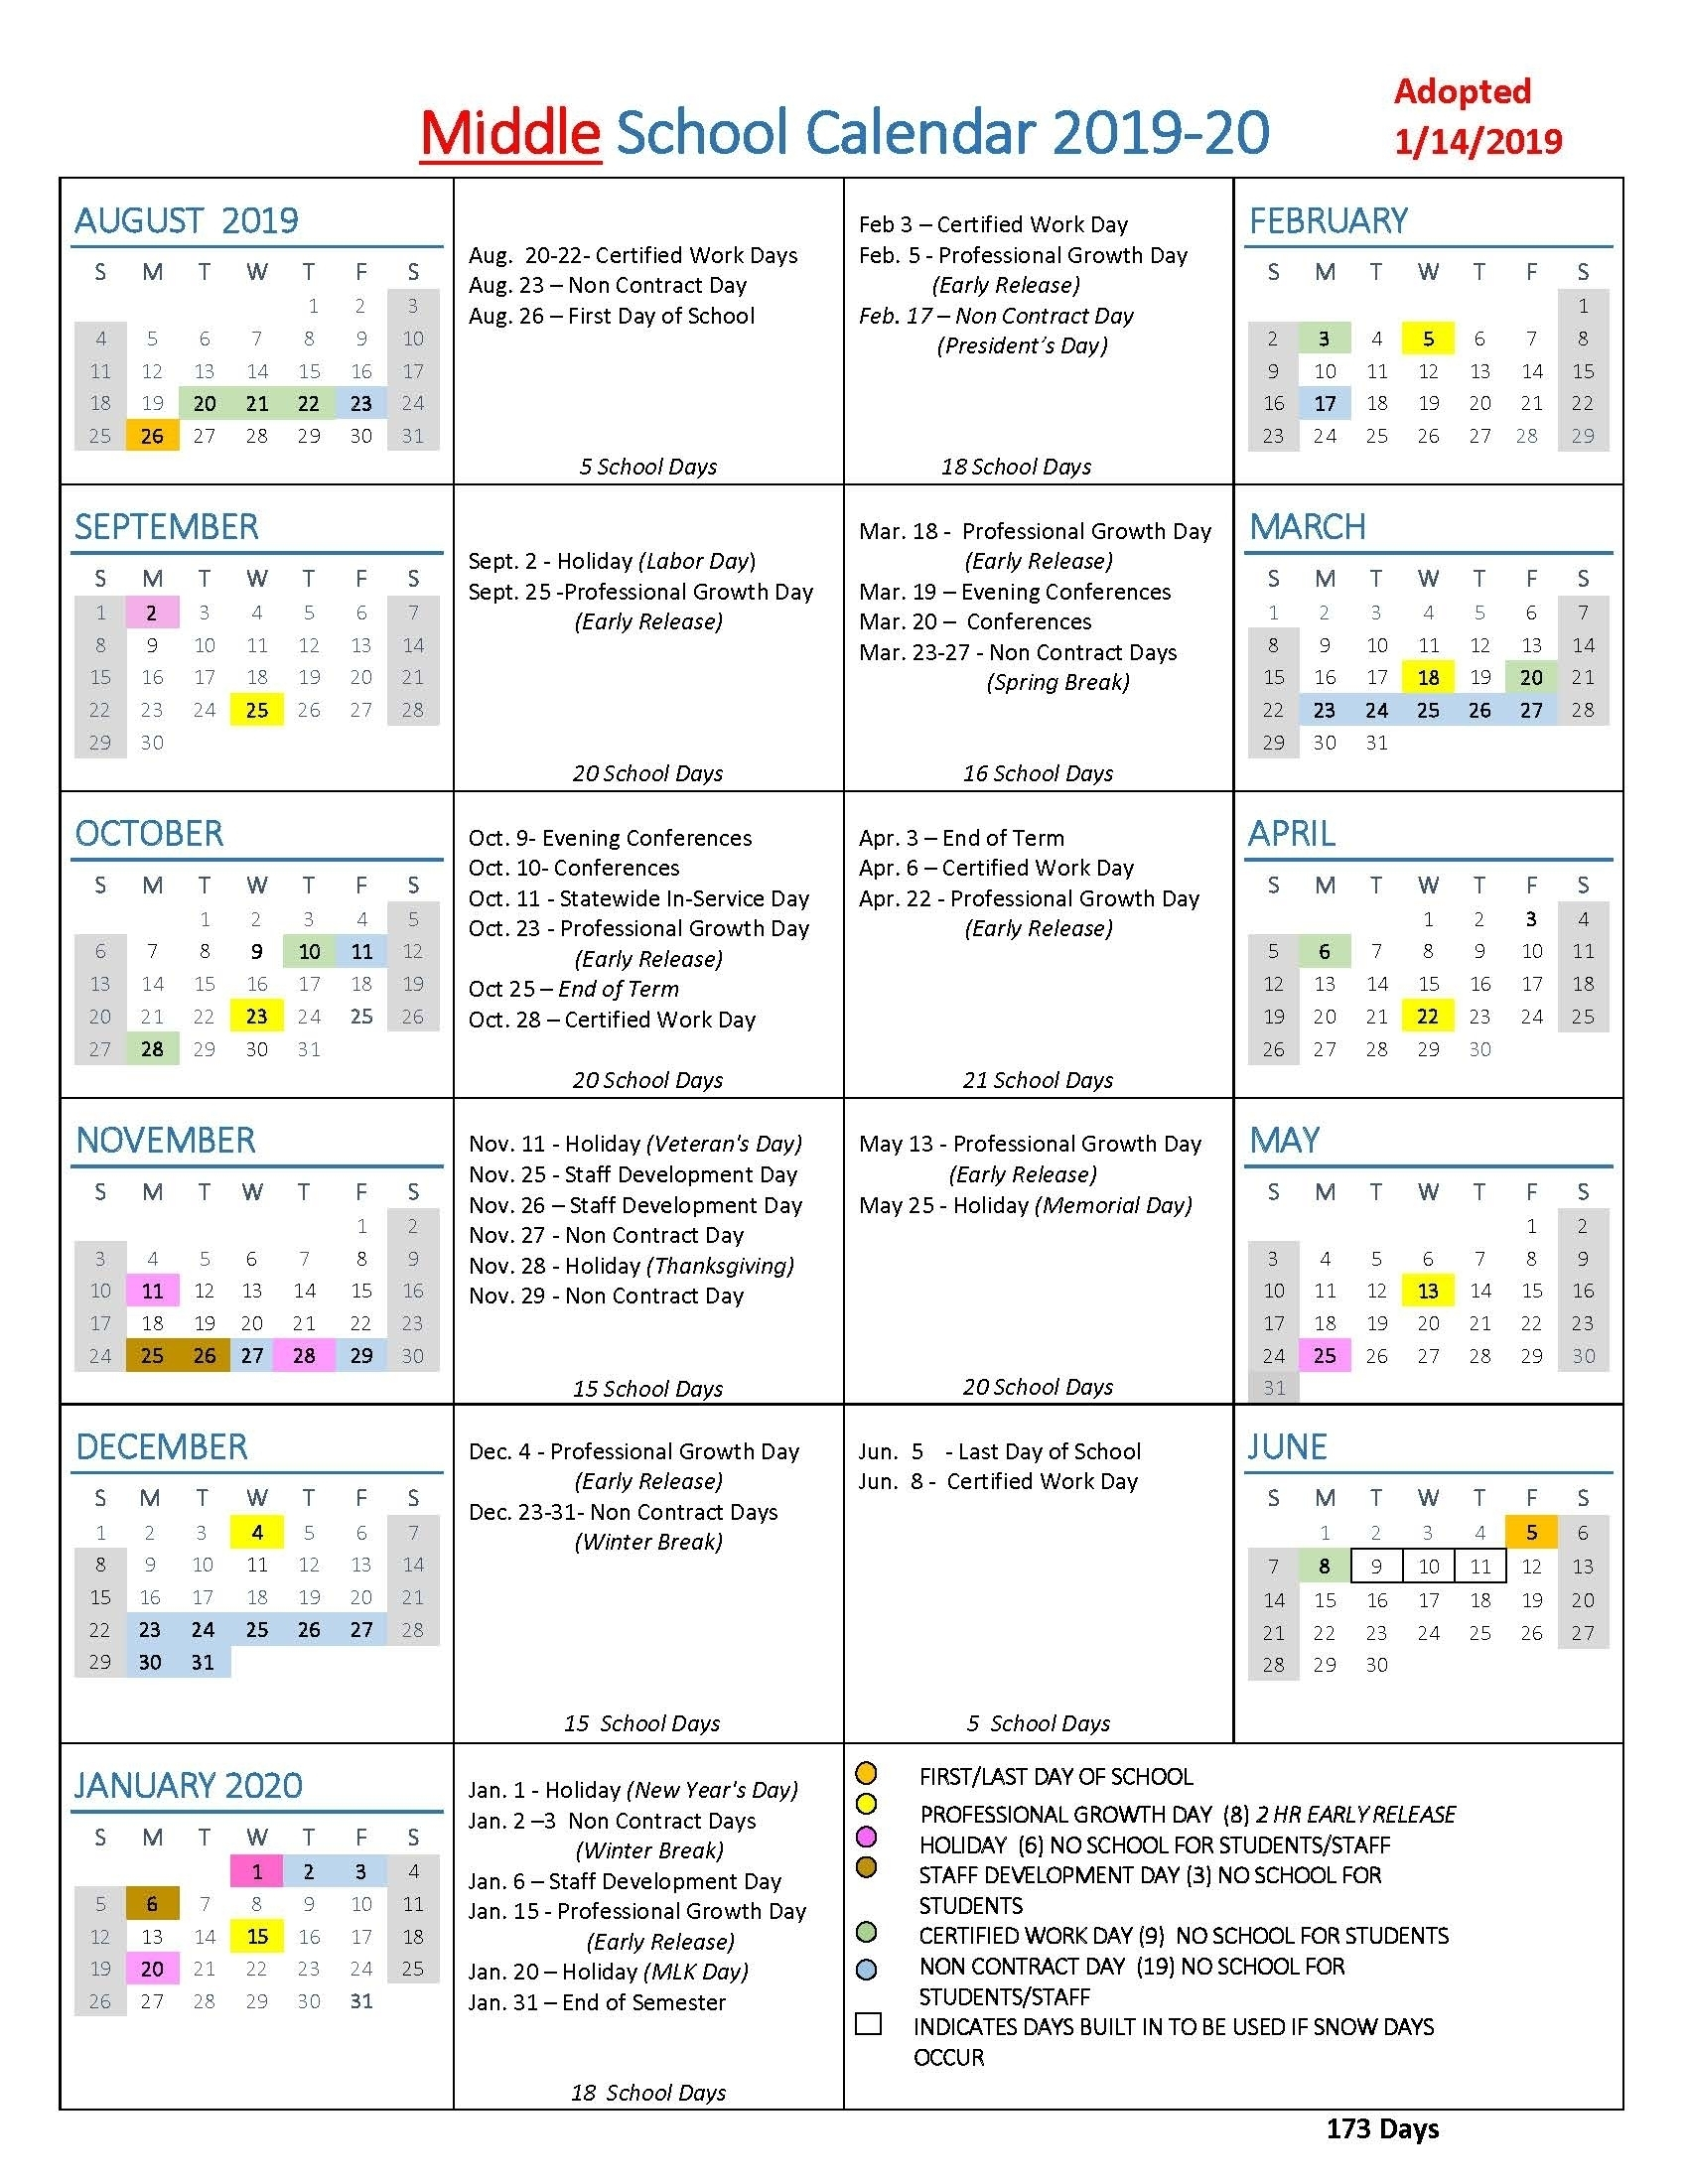 Calendar With All The Special Days In 2020 - Calendar in What Are The Special Days In 2020